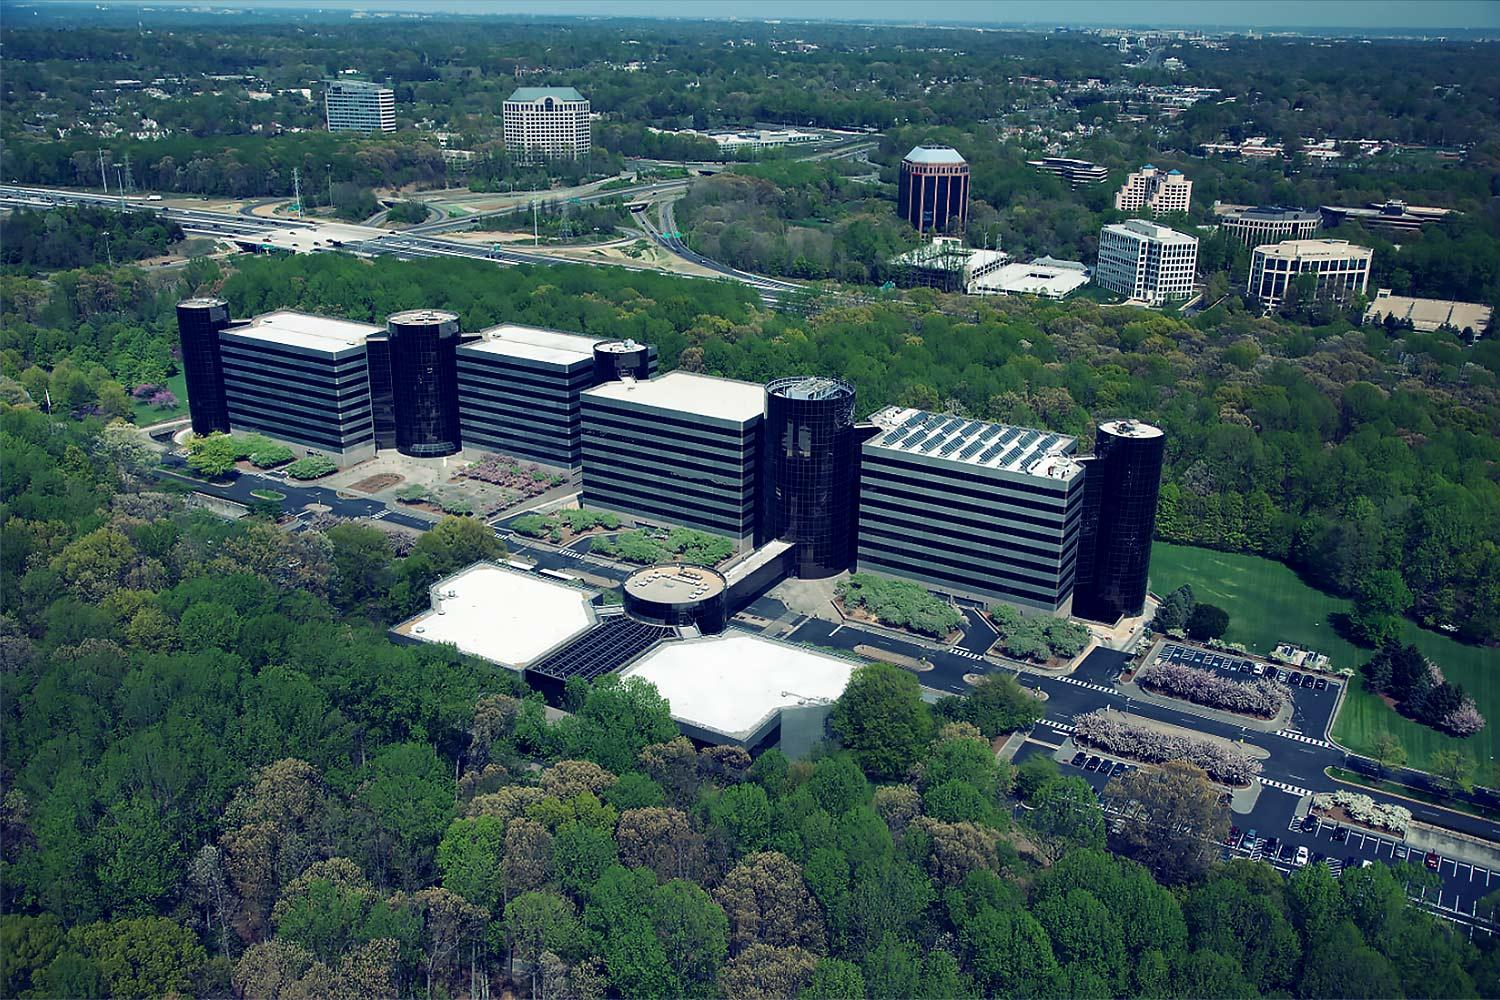 An aerial image of the Inova Center for Personalized Health, where the research institute will be located.